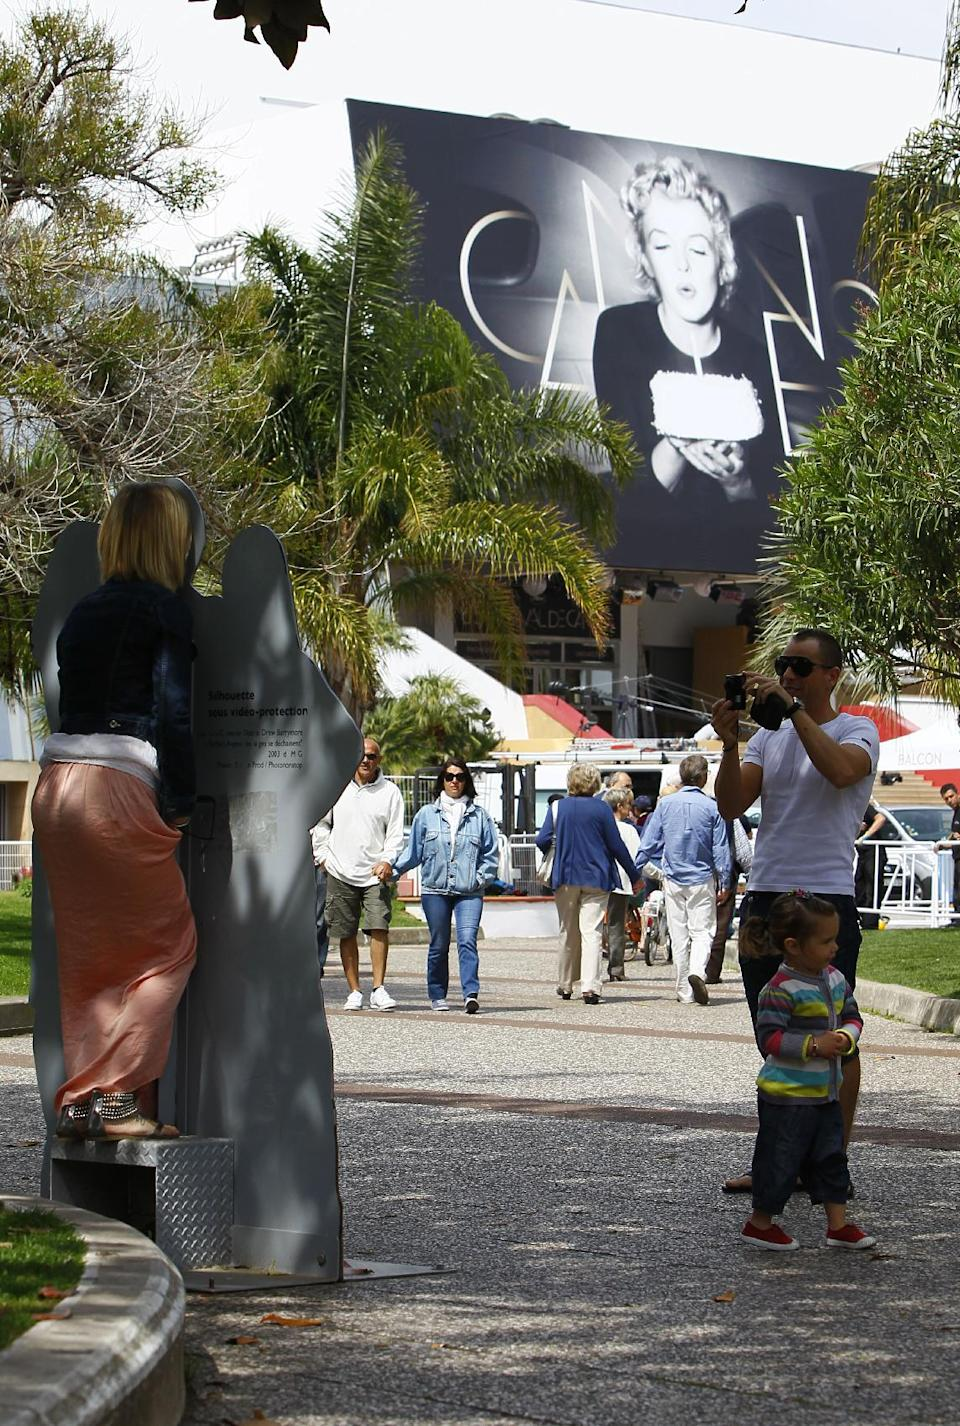 Members of the public take a picture in front of the venue at the 65th international film festival, in Cannes, southern France, Tuesday, May 15, 2012. (AP Photo/Francois Mori)